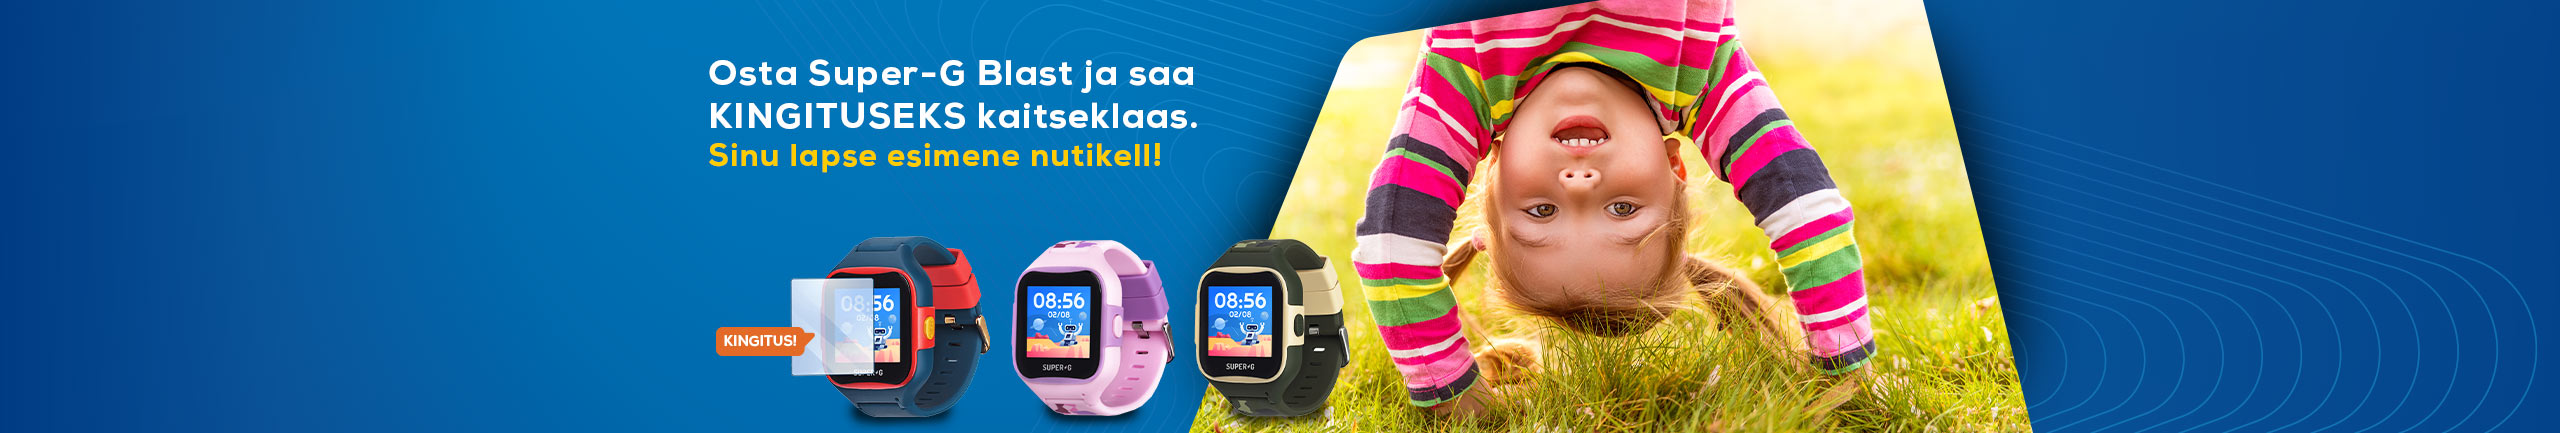 Buy a Super-G Blast smartwatch and get a complimentary screen protector!